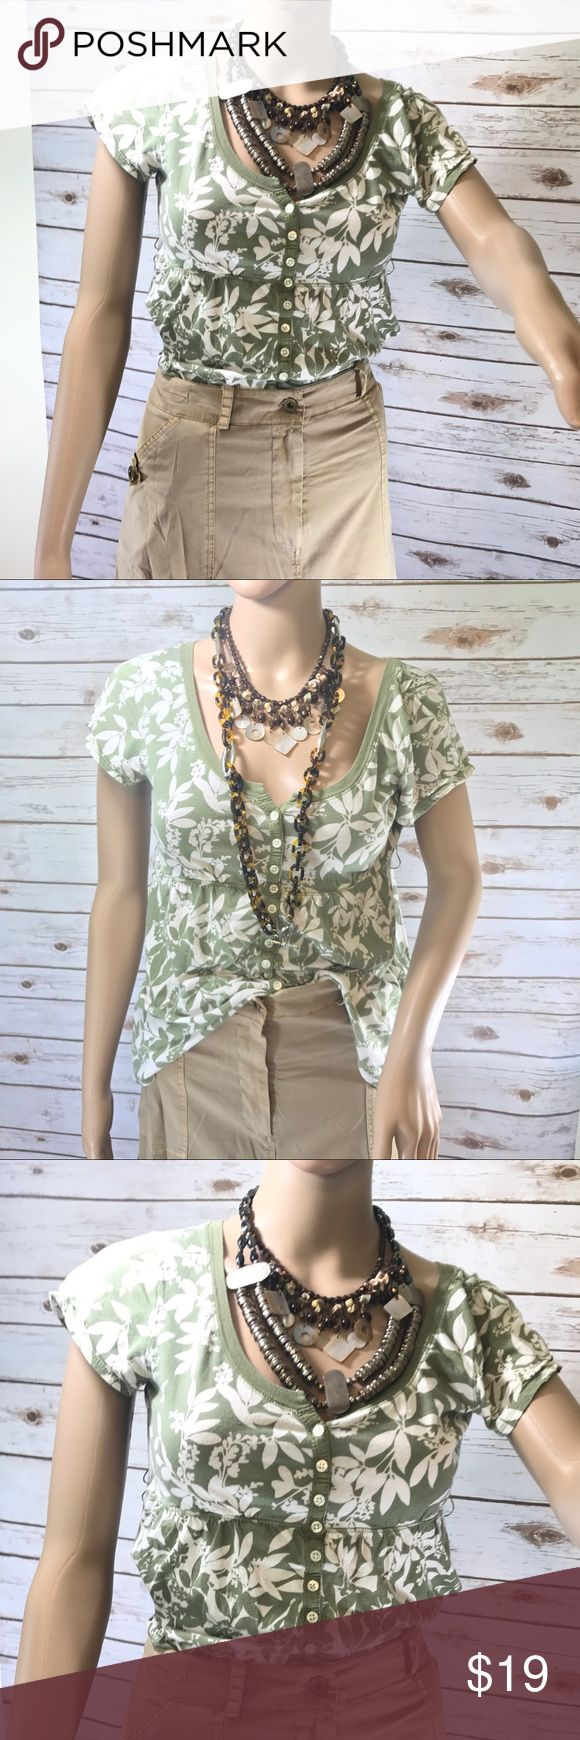 Abercrombie and Fitch Sage Green and Cream Tee Abercrombie and Fitch Sage Green and Cream Tee  SIZE M - necklaces not included. Listing is for shirt only. Abercrombie & Fitch Tops Tees - Short Sleeve